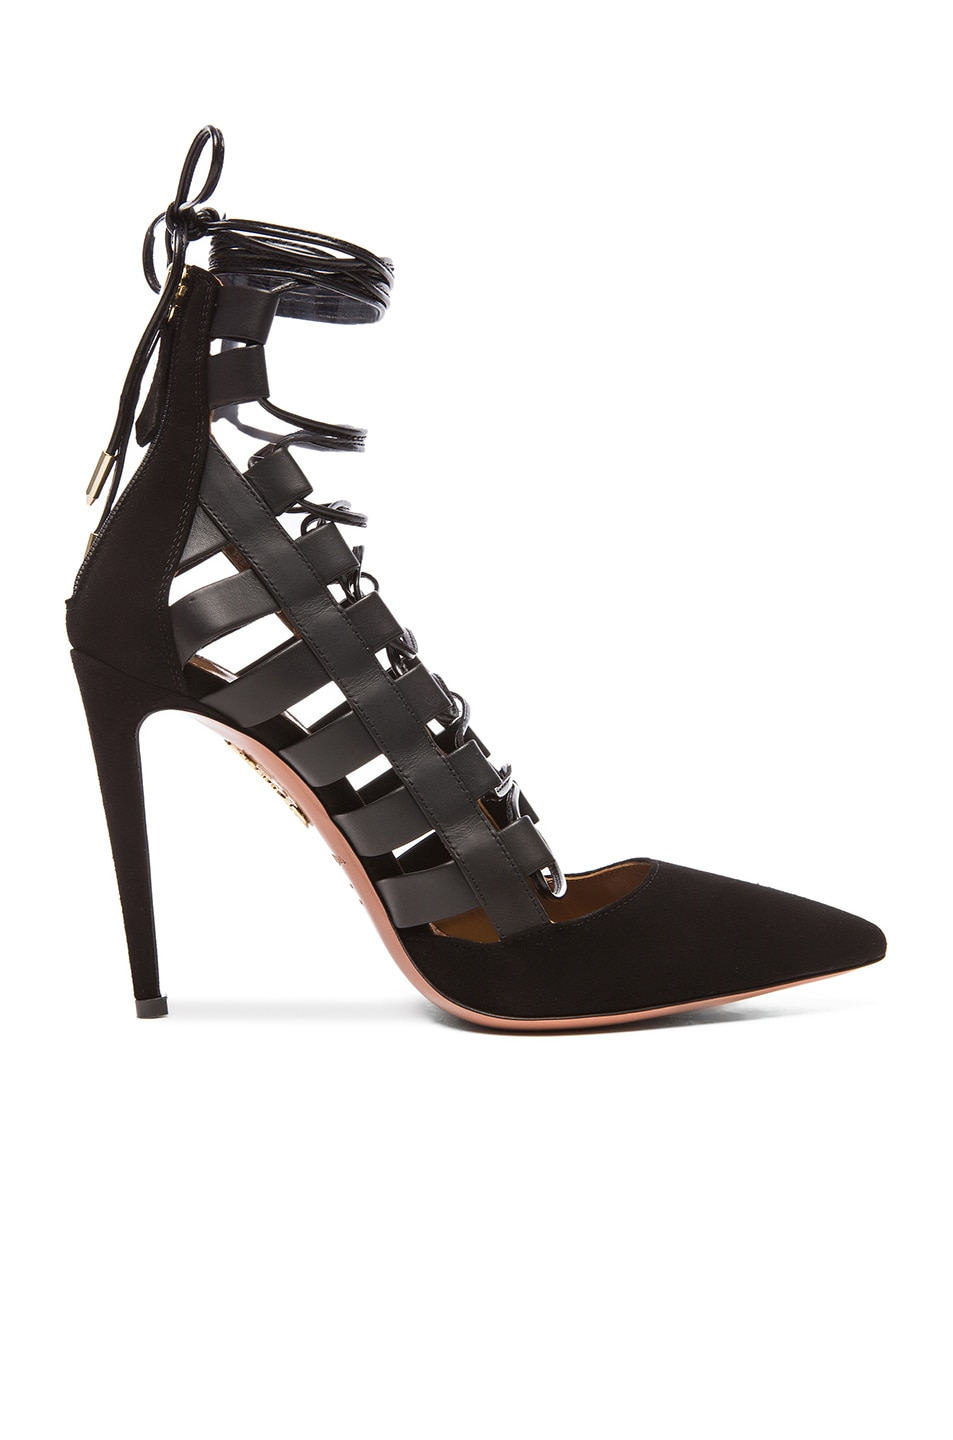 d3753424a11 Image 1 of Aquazzura Amazon Leather   Suede Heels in Black